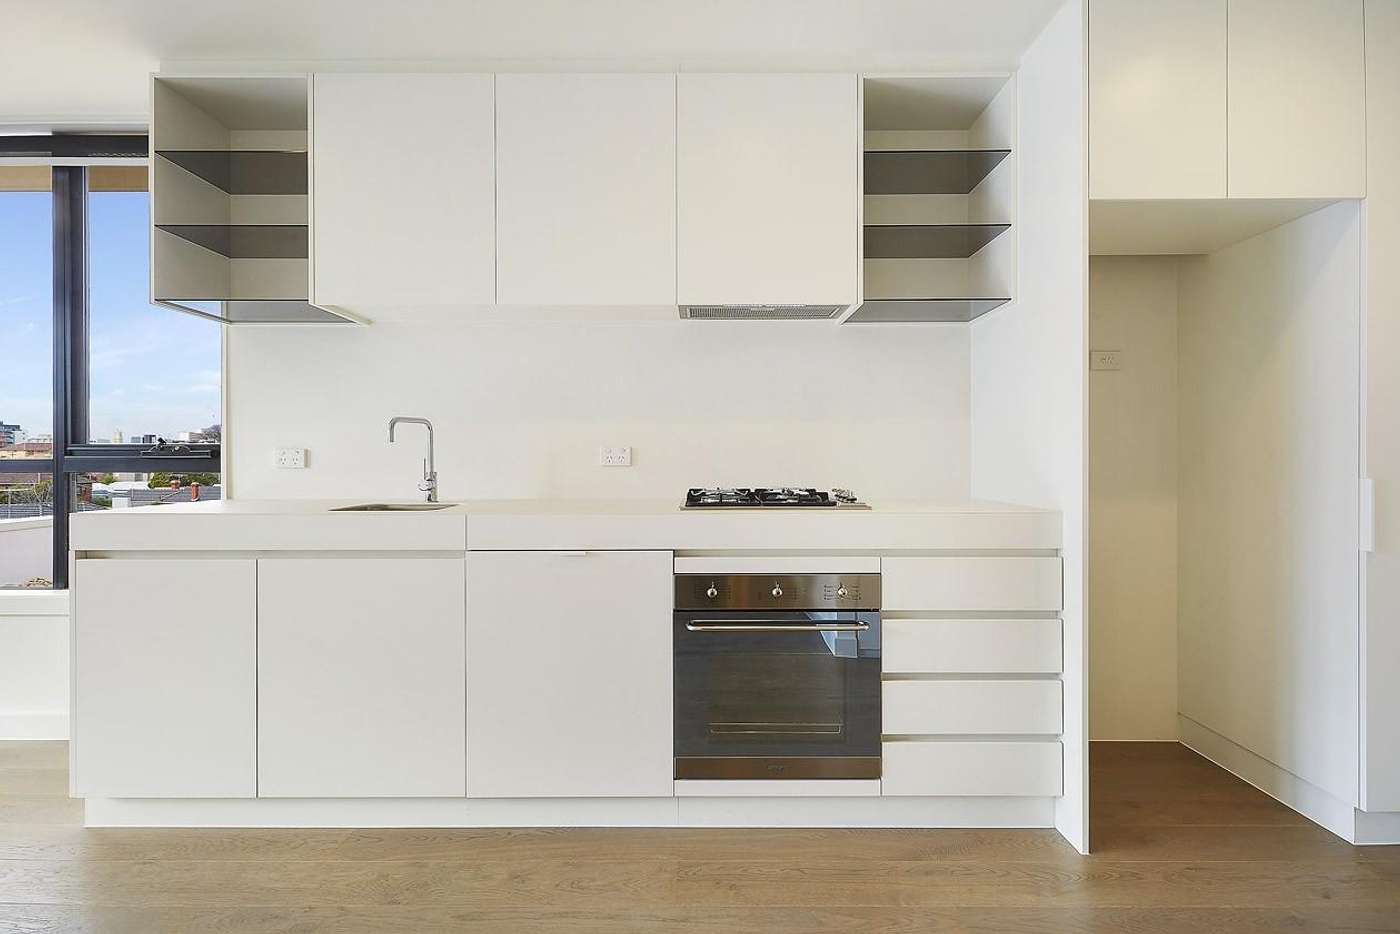 Main view of Homely apartment listing, 303/2a Henry Street, Windsor VIC 3181